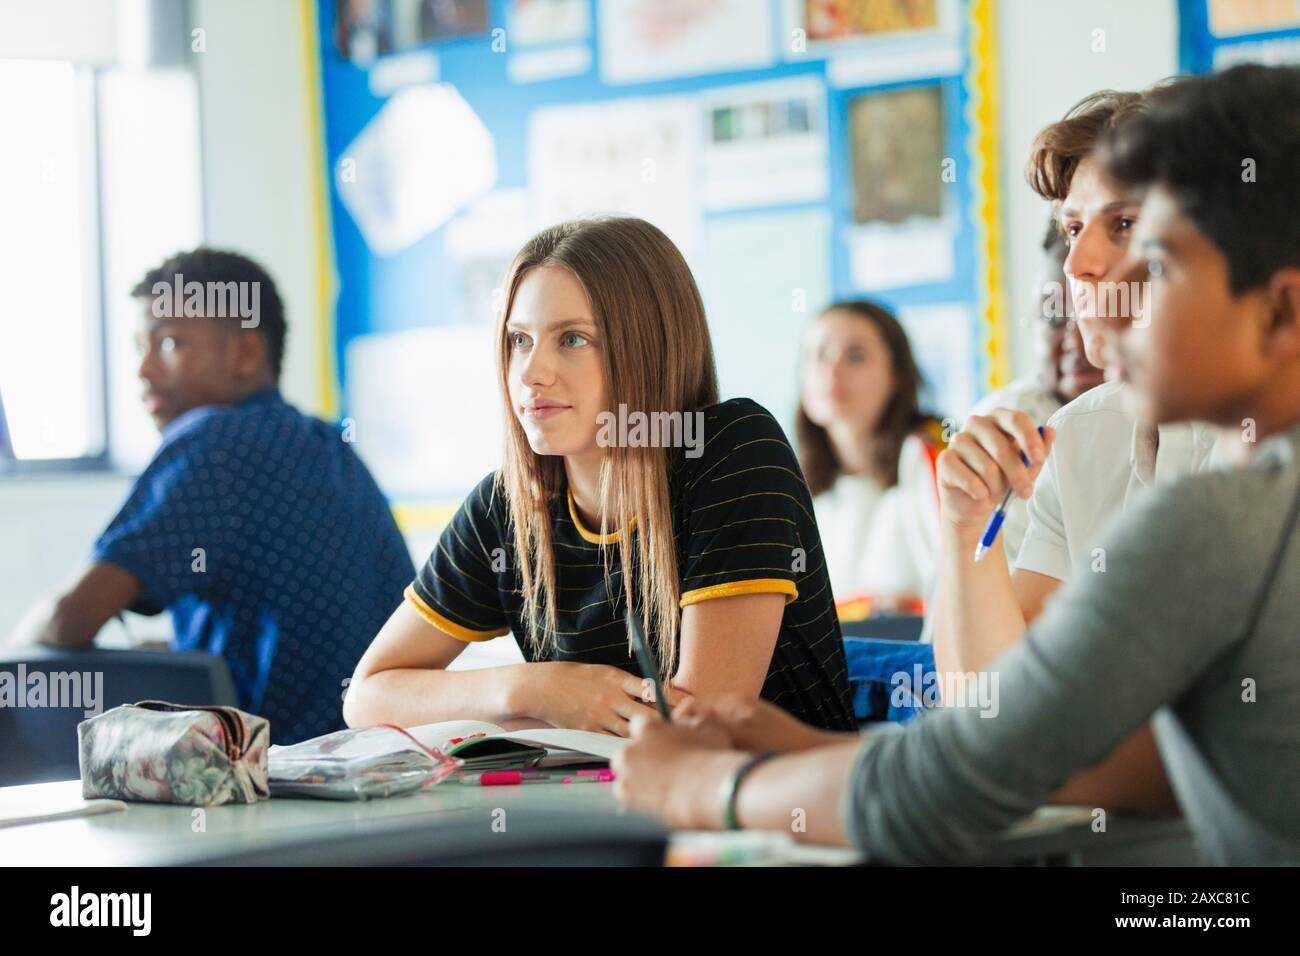 Close up focused, attentive high school girl student listening in classroom Stock Photo